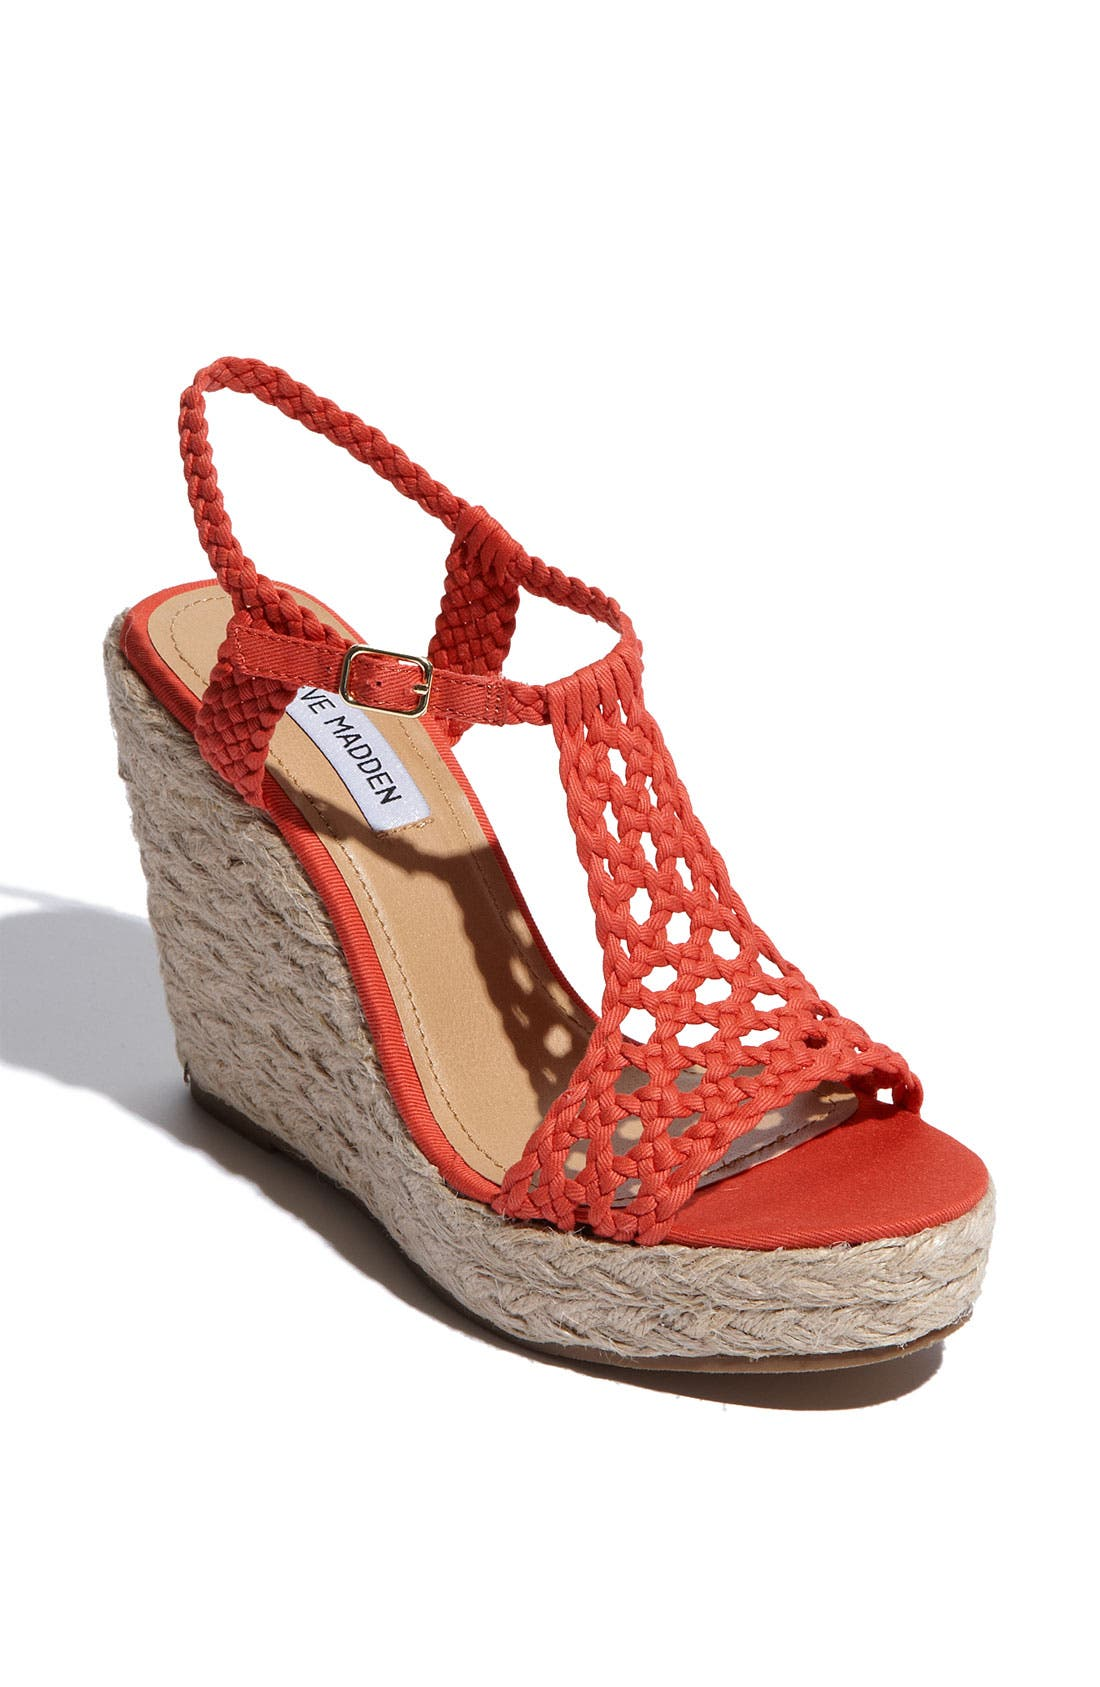 Alternate Image 1 Selected - Steve Madden 'Manngo' Woven Sandal